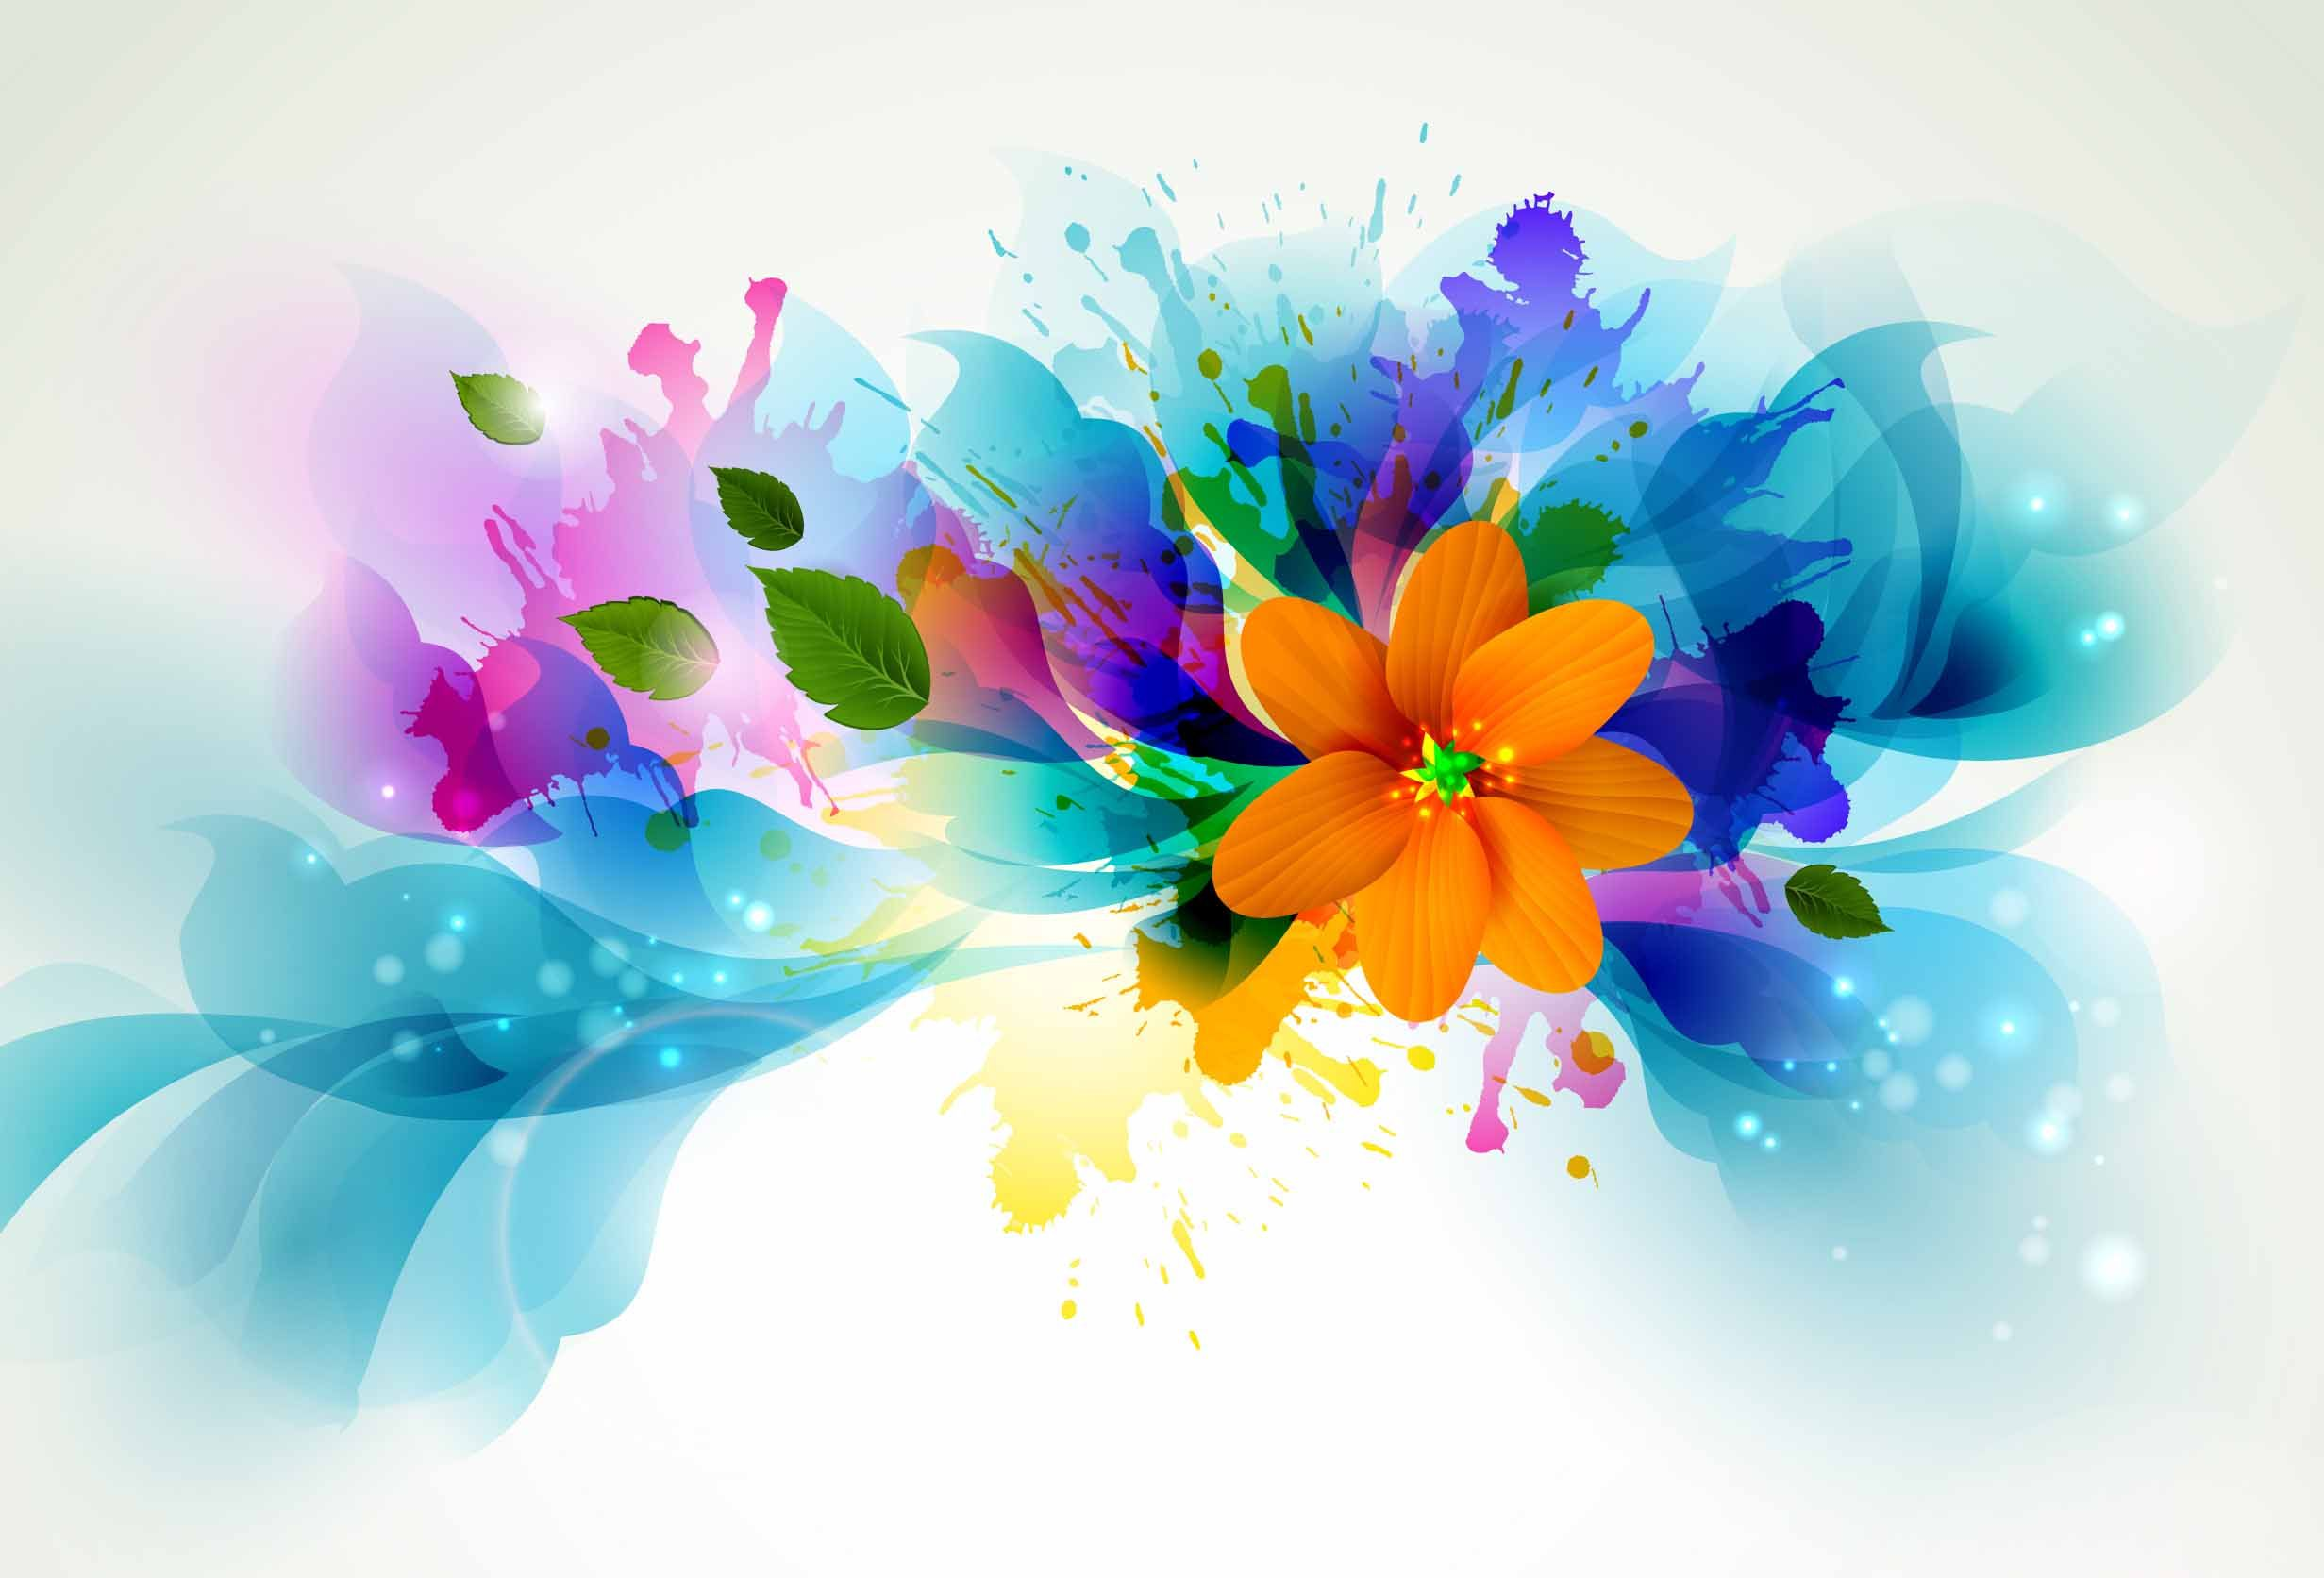 3D Flowers wallpapers #6983218